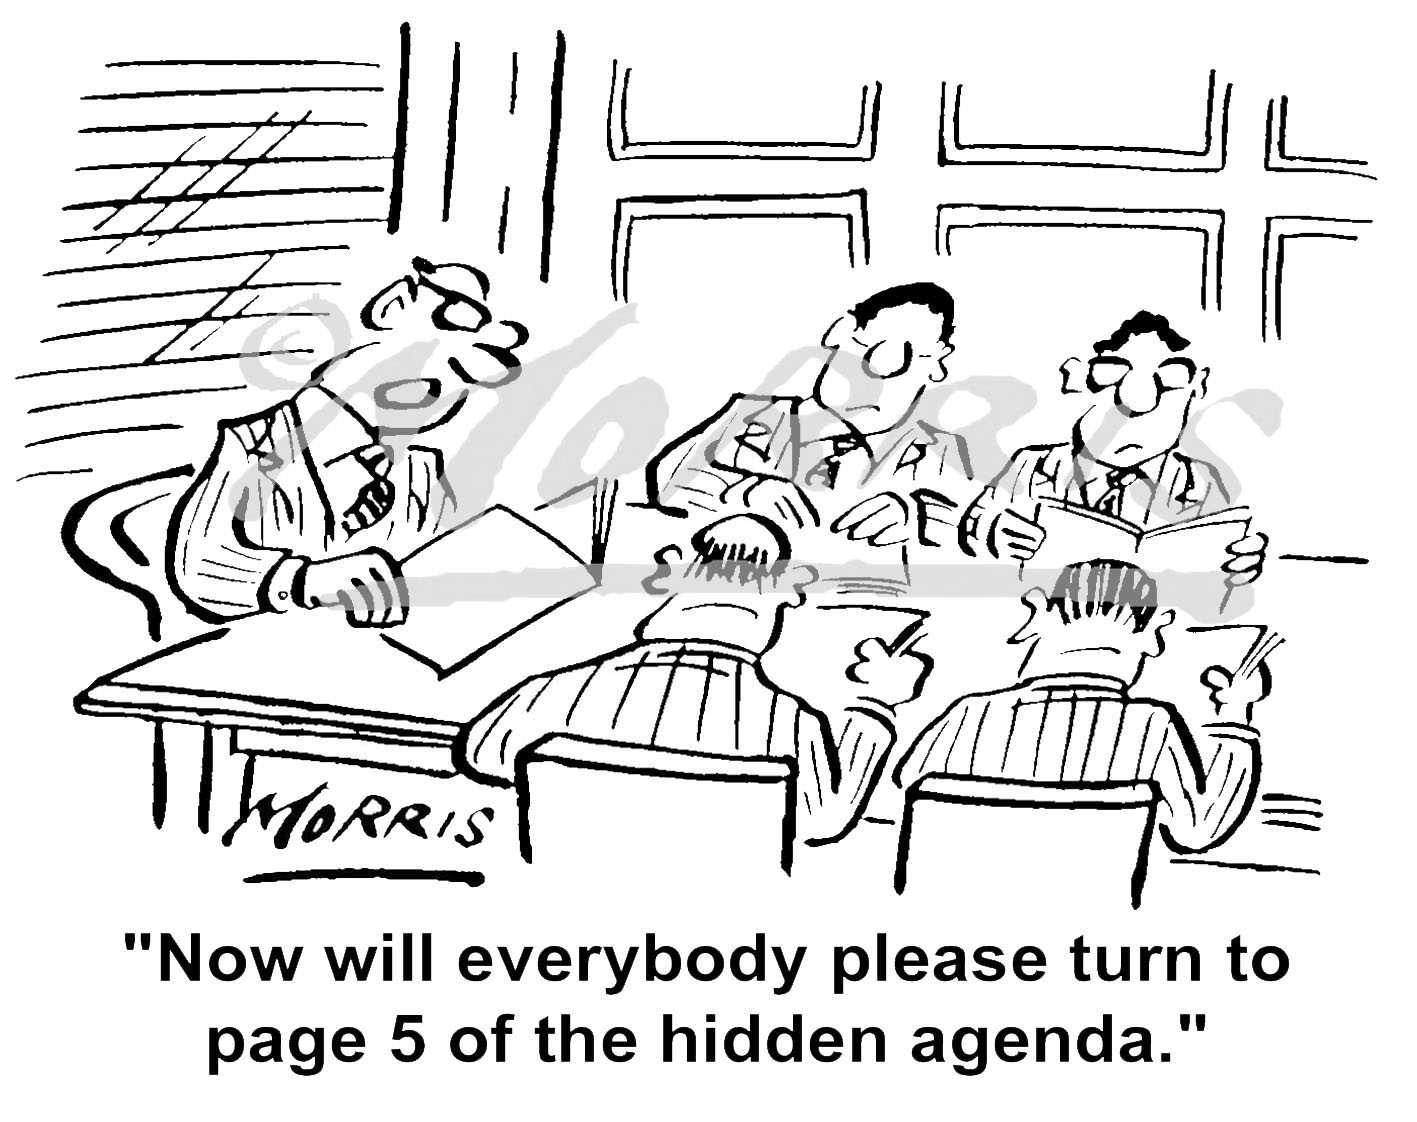 Boardroom agenda meeting cartoon – Ref: 3215bw